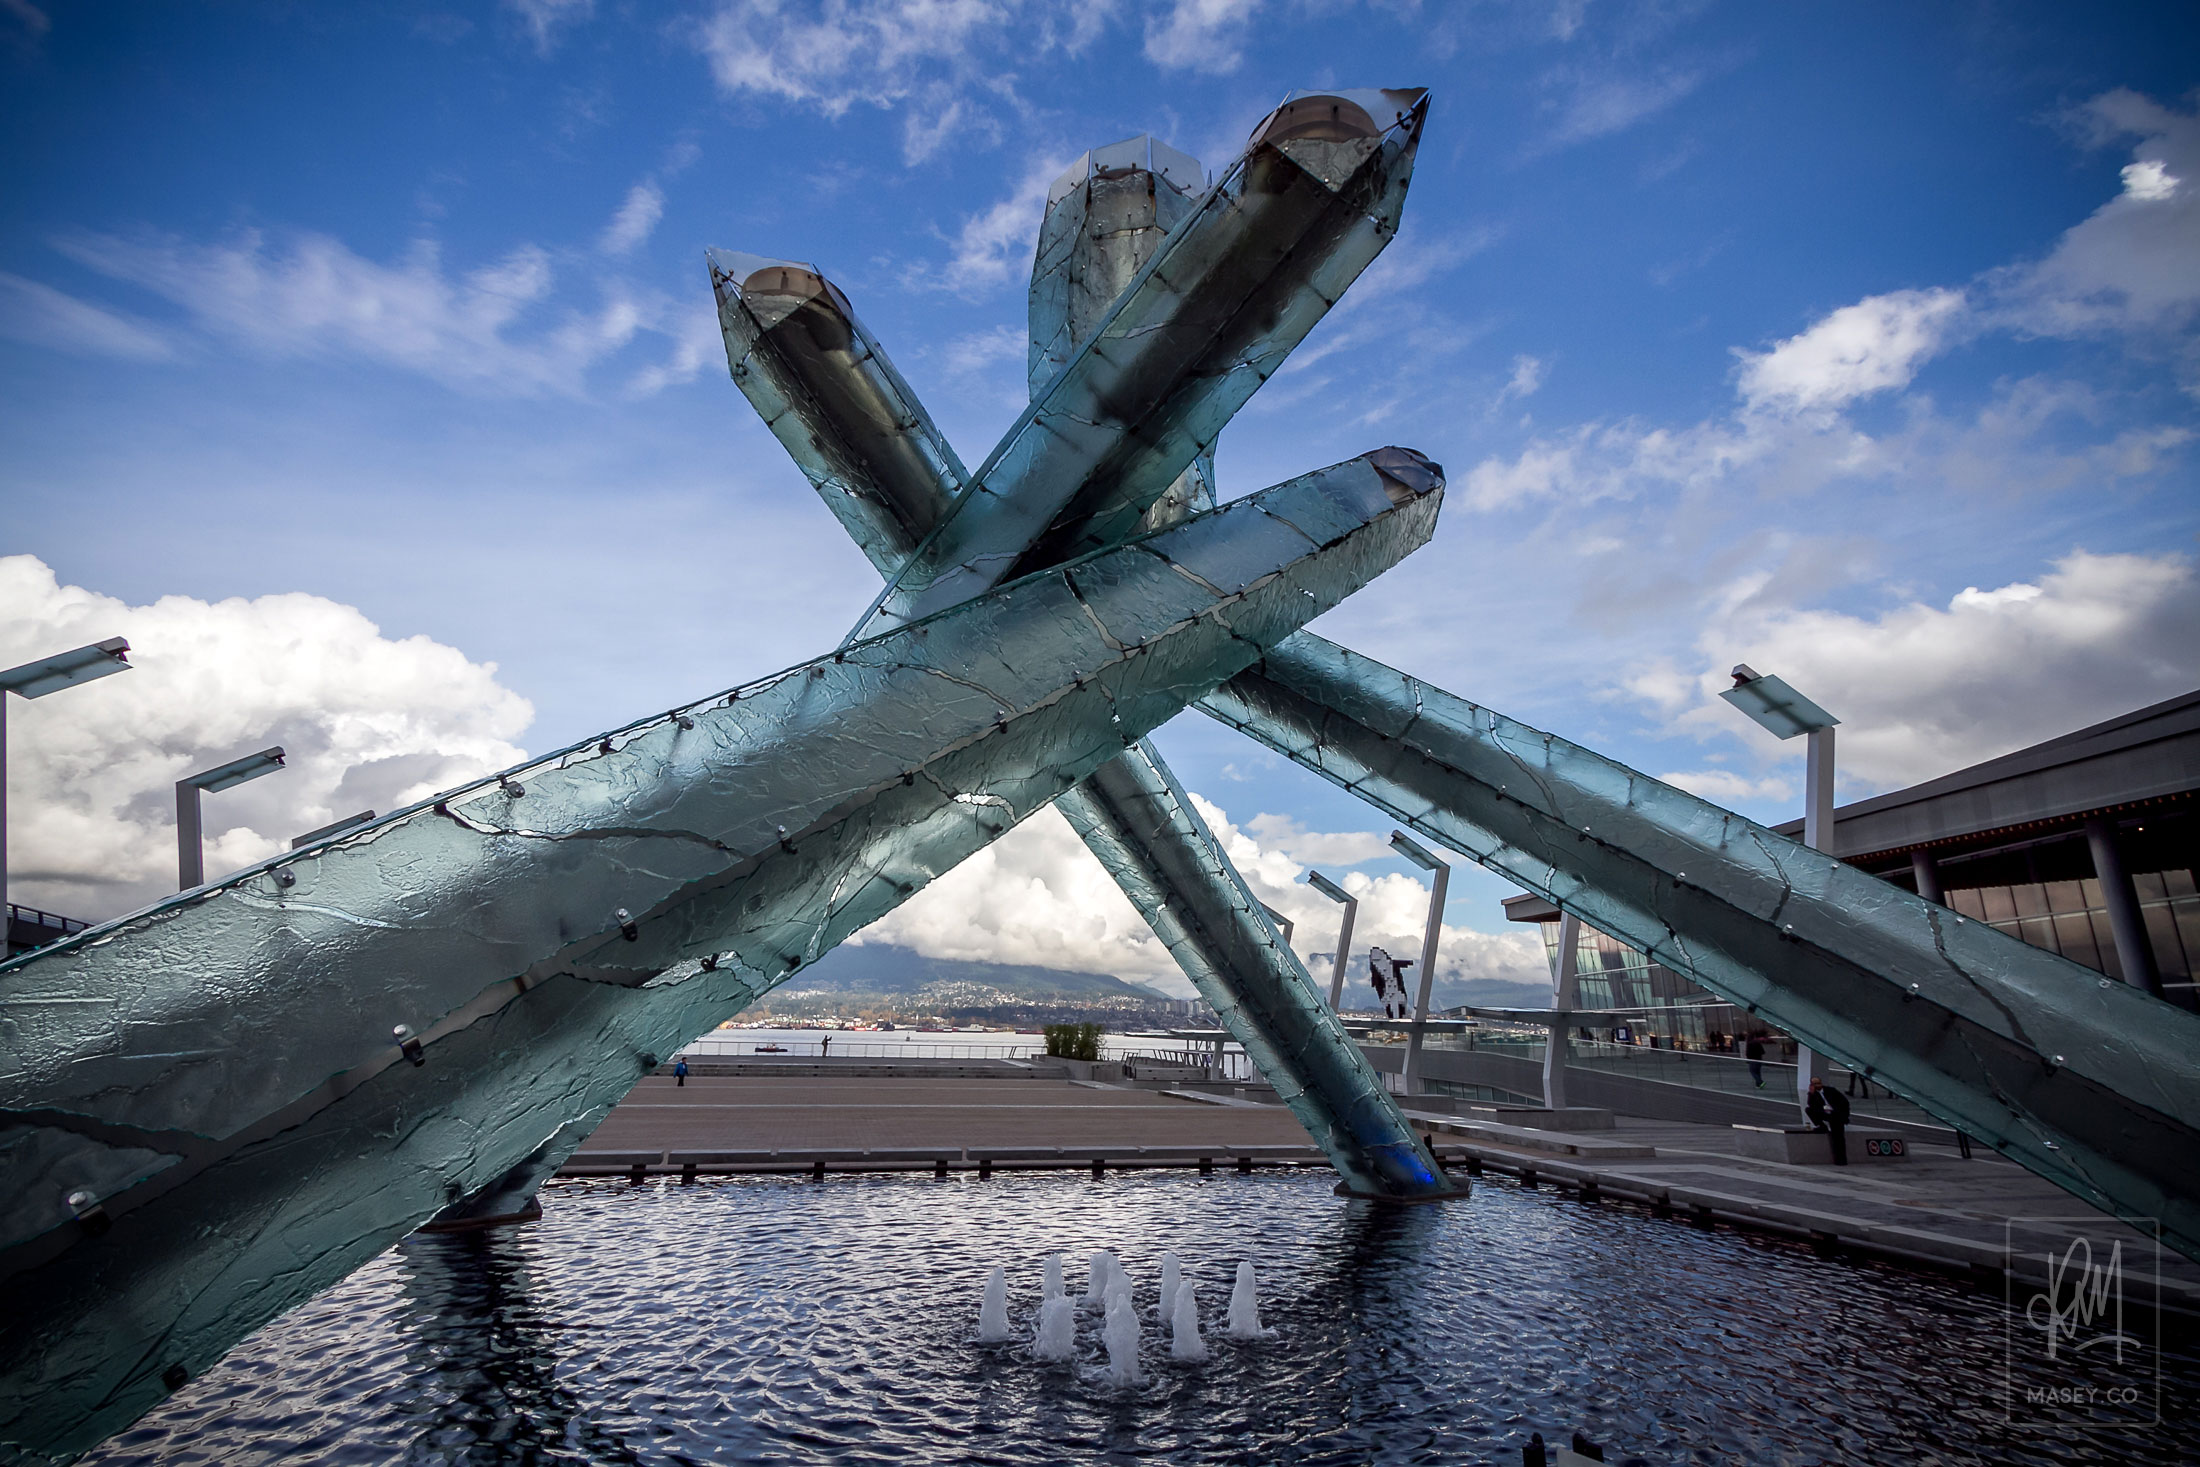 2010 Vancouver Winter Olympics cauldron